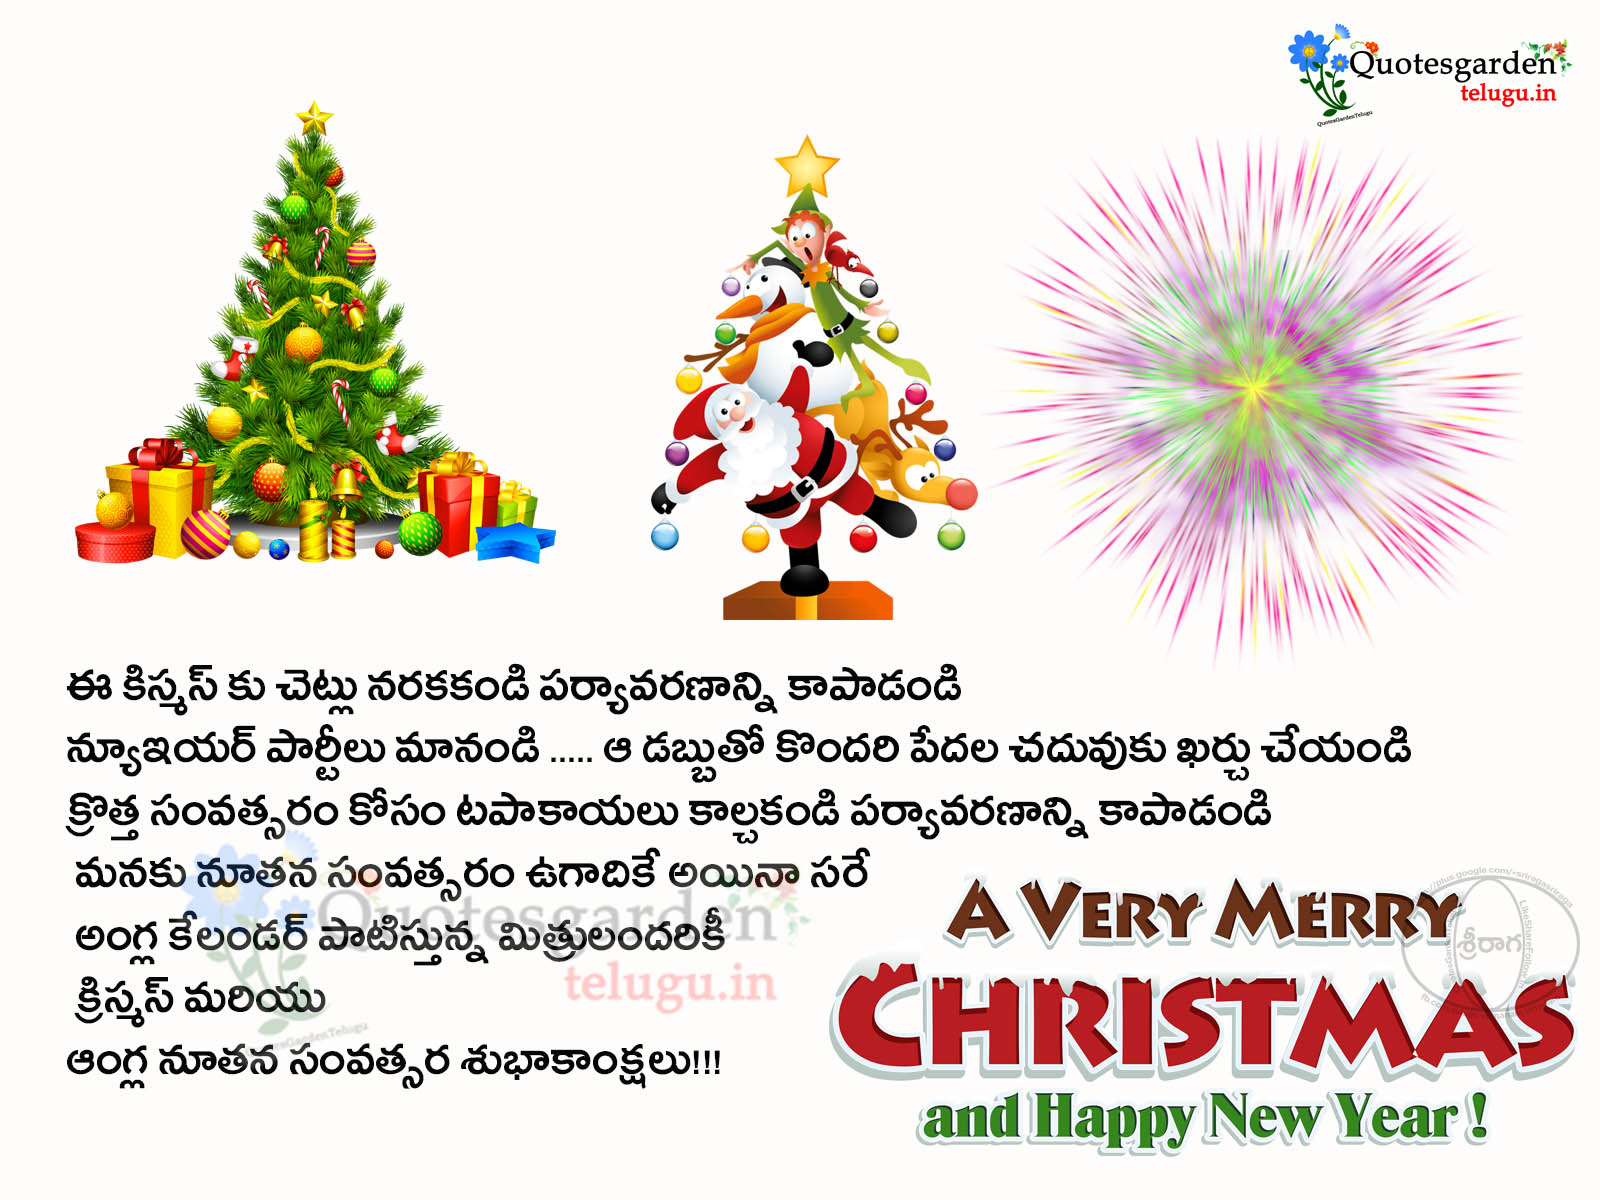 Happy New Year 2018 Greetings Wishes In Telugu Quotes Garden